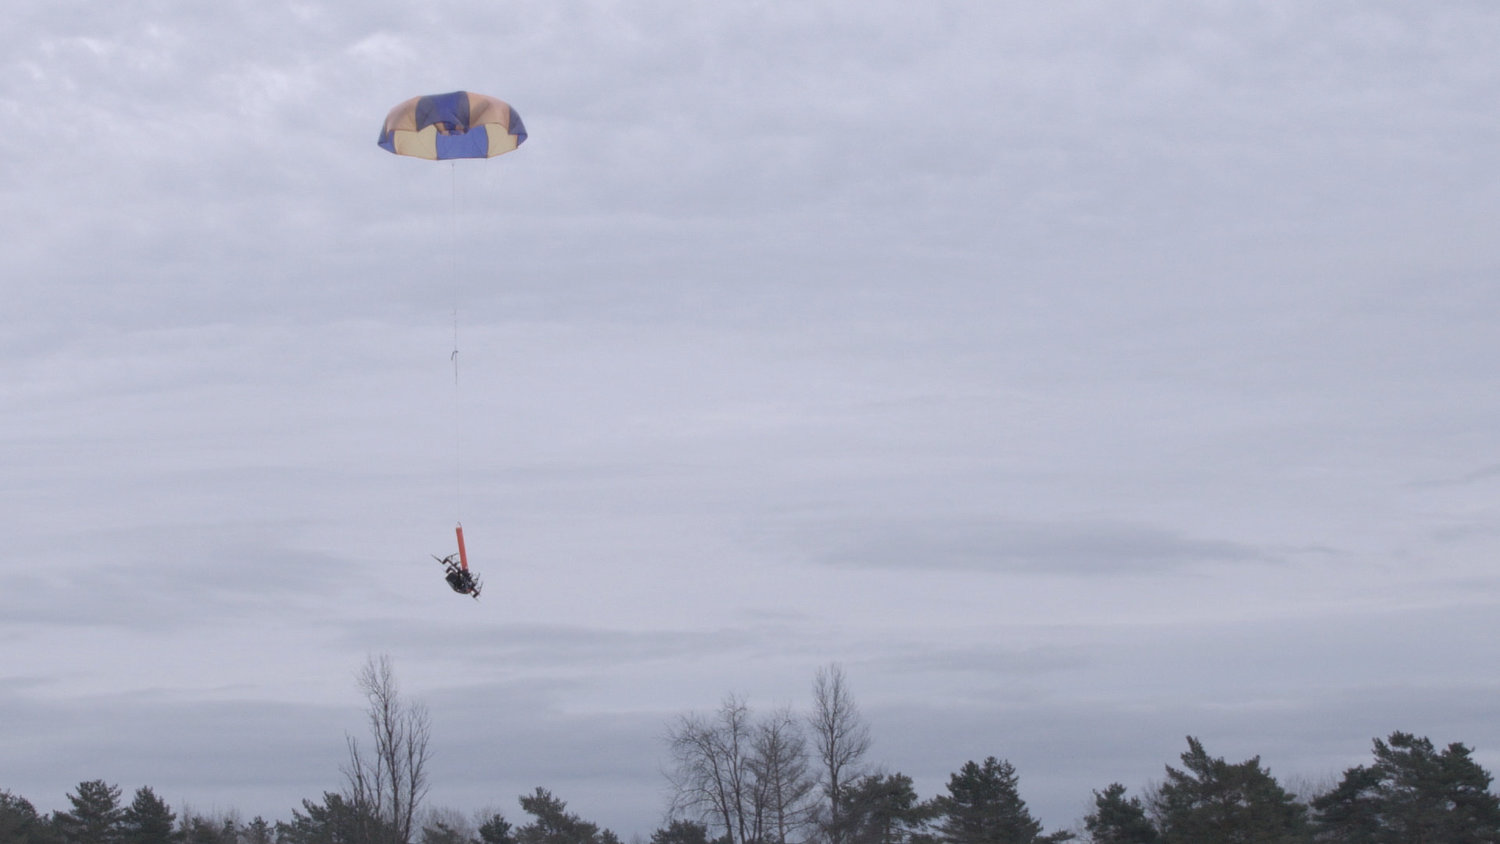 DRONE CHUTE — A drone equipped with a parachute system made by Indemnis of Anchorage, Alaska, shown during a test in December at Griffiss International Airport's drone test site operated by the Northeast UAS Airspace Integration Research Alliance.